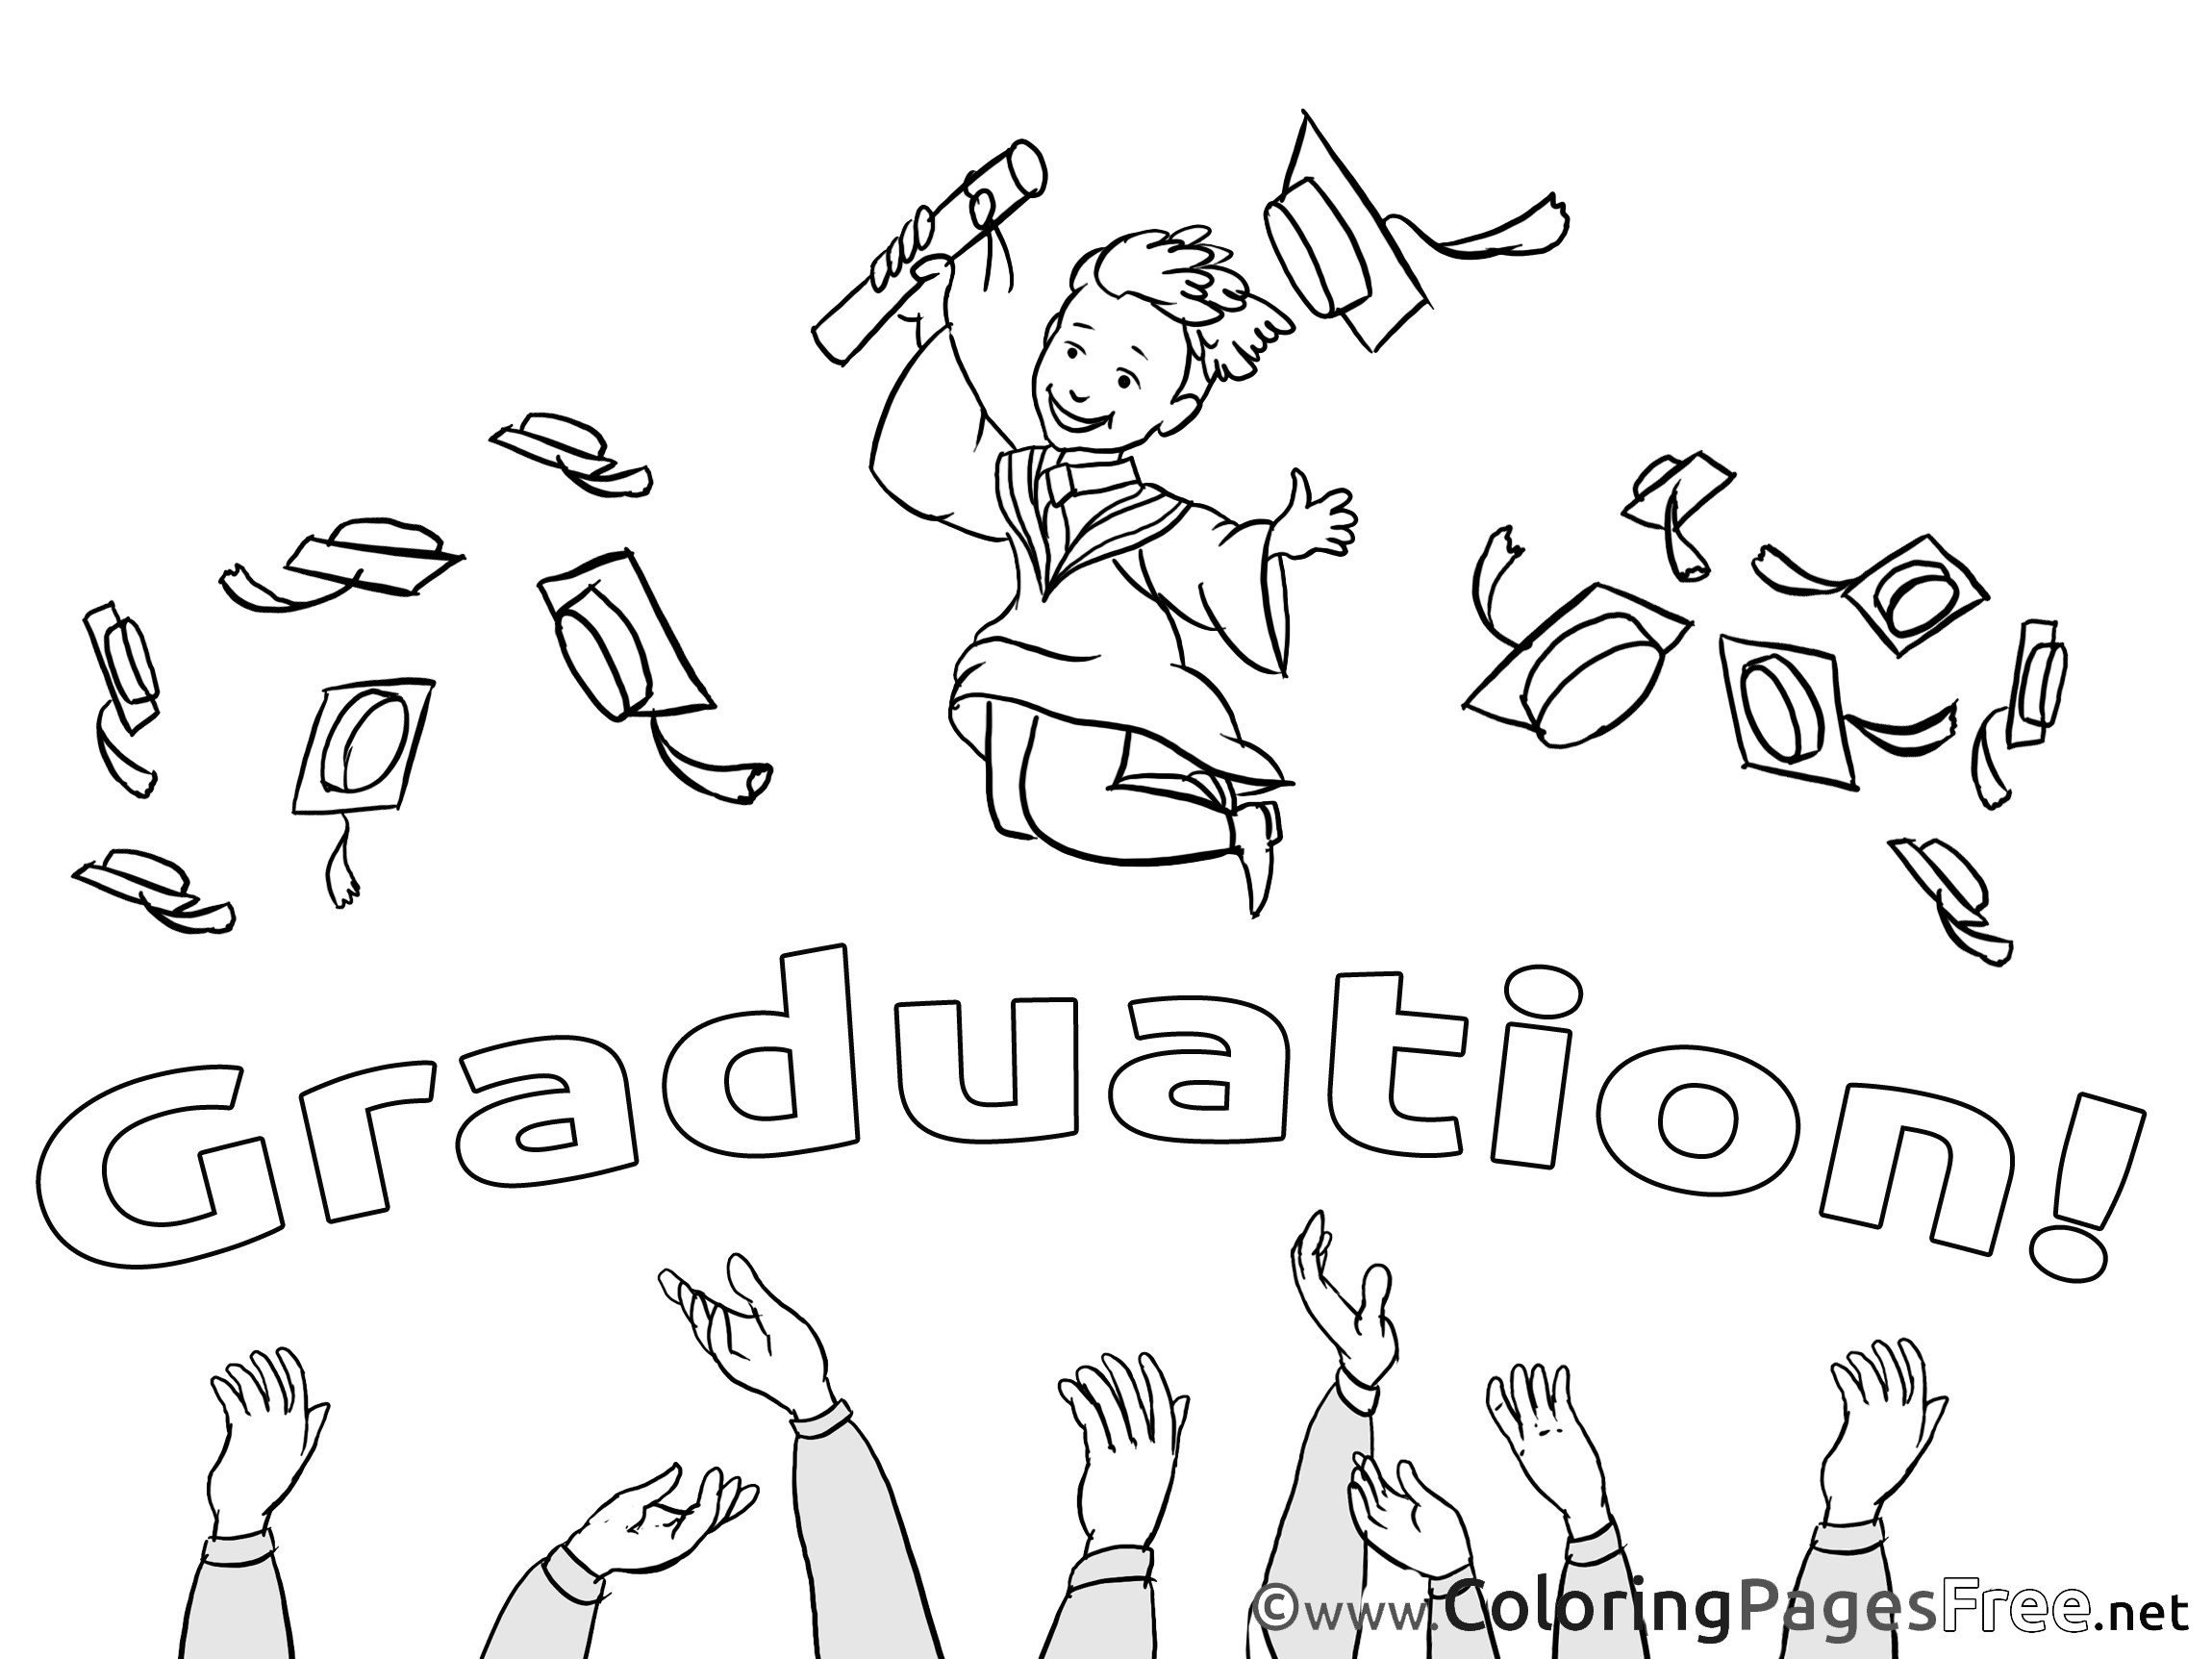 Baccalaureate Kids Graduation Coloring Page